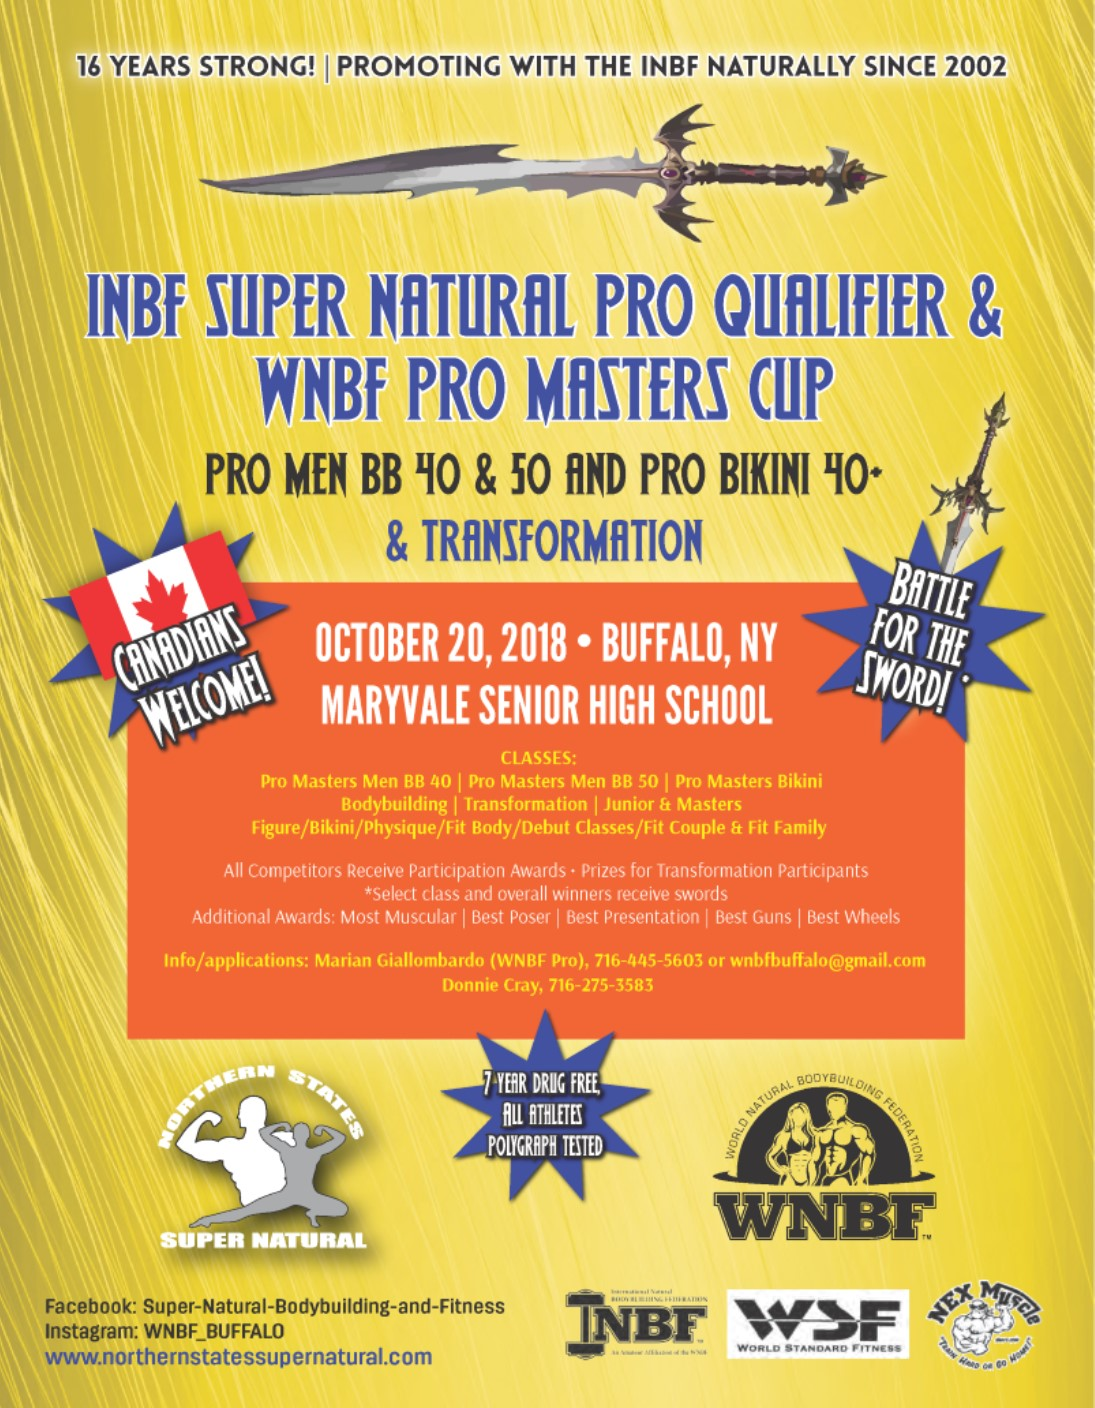 INBF Supernatural WNBF Pro Qualifier WNBF Pro Masters Cup Buffalo New York